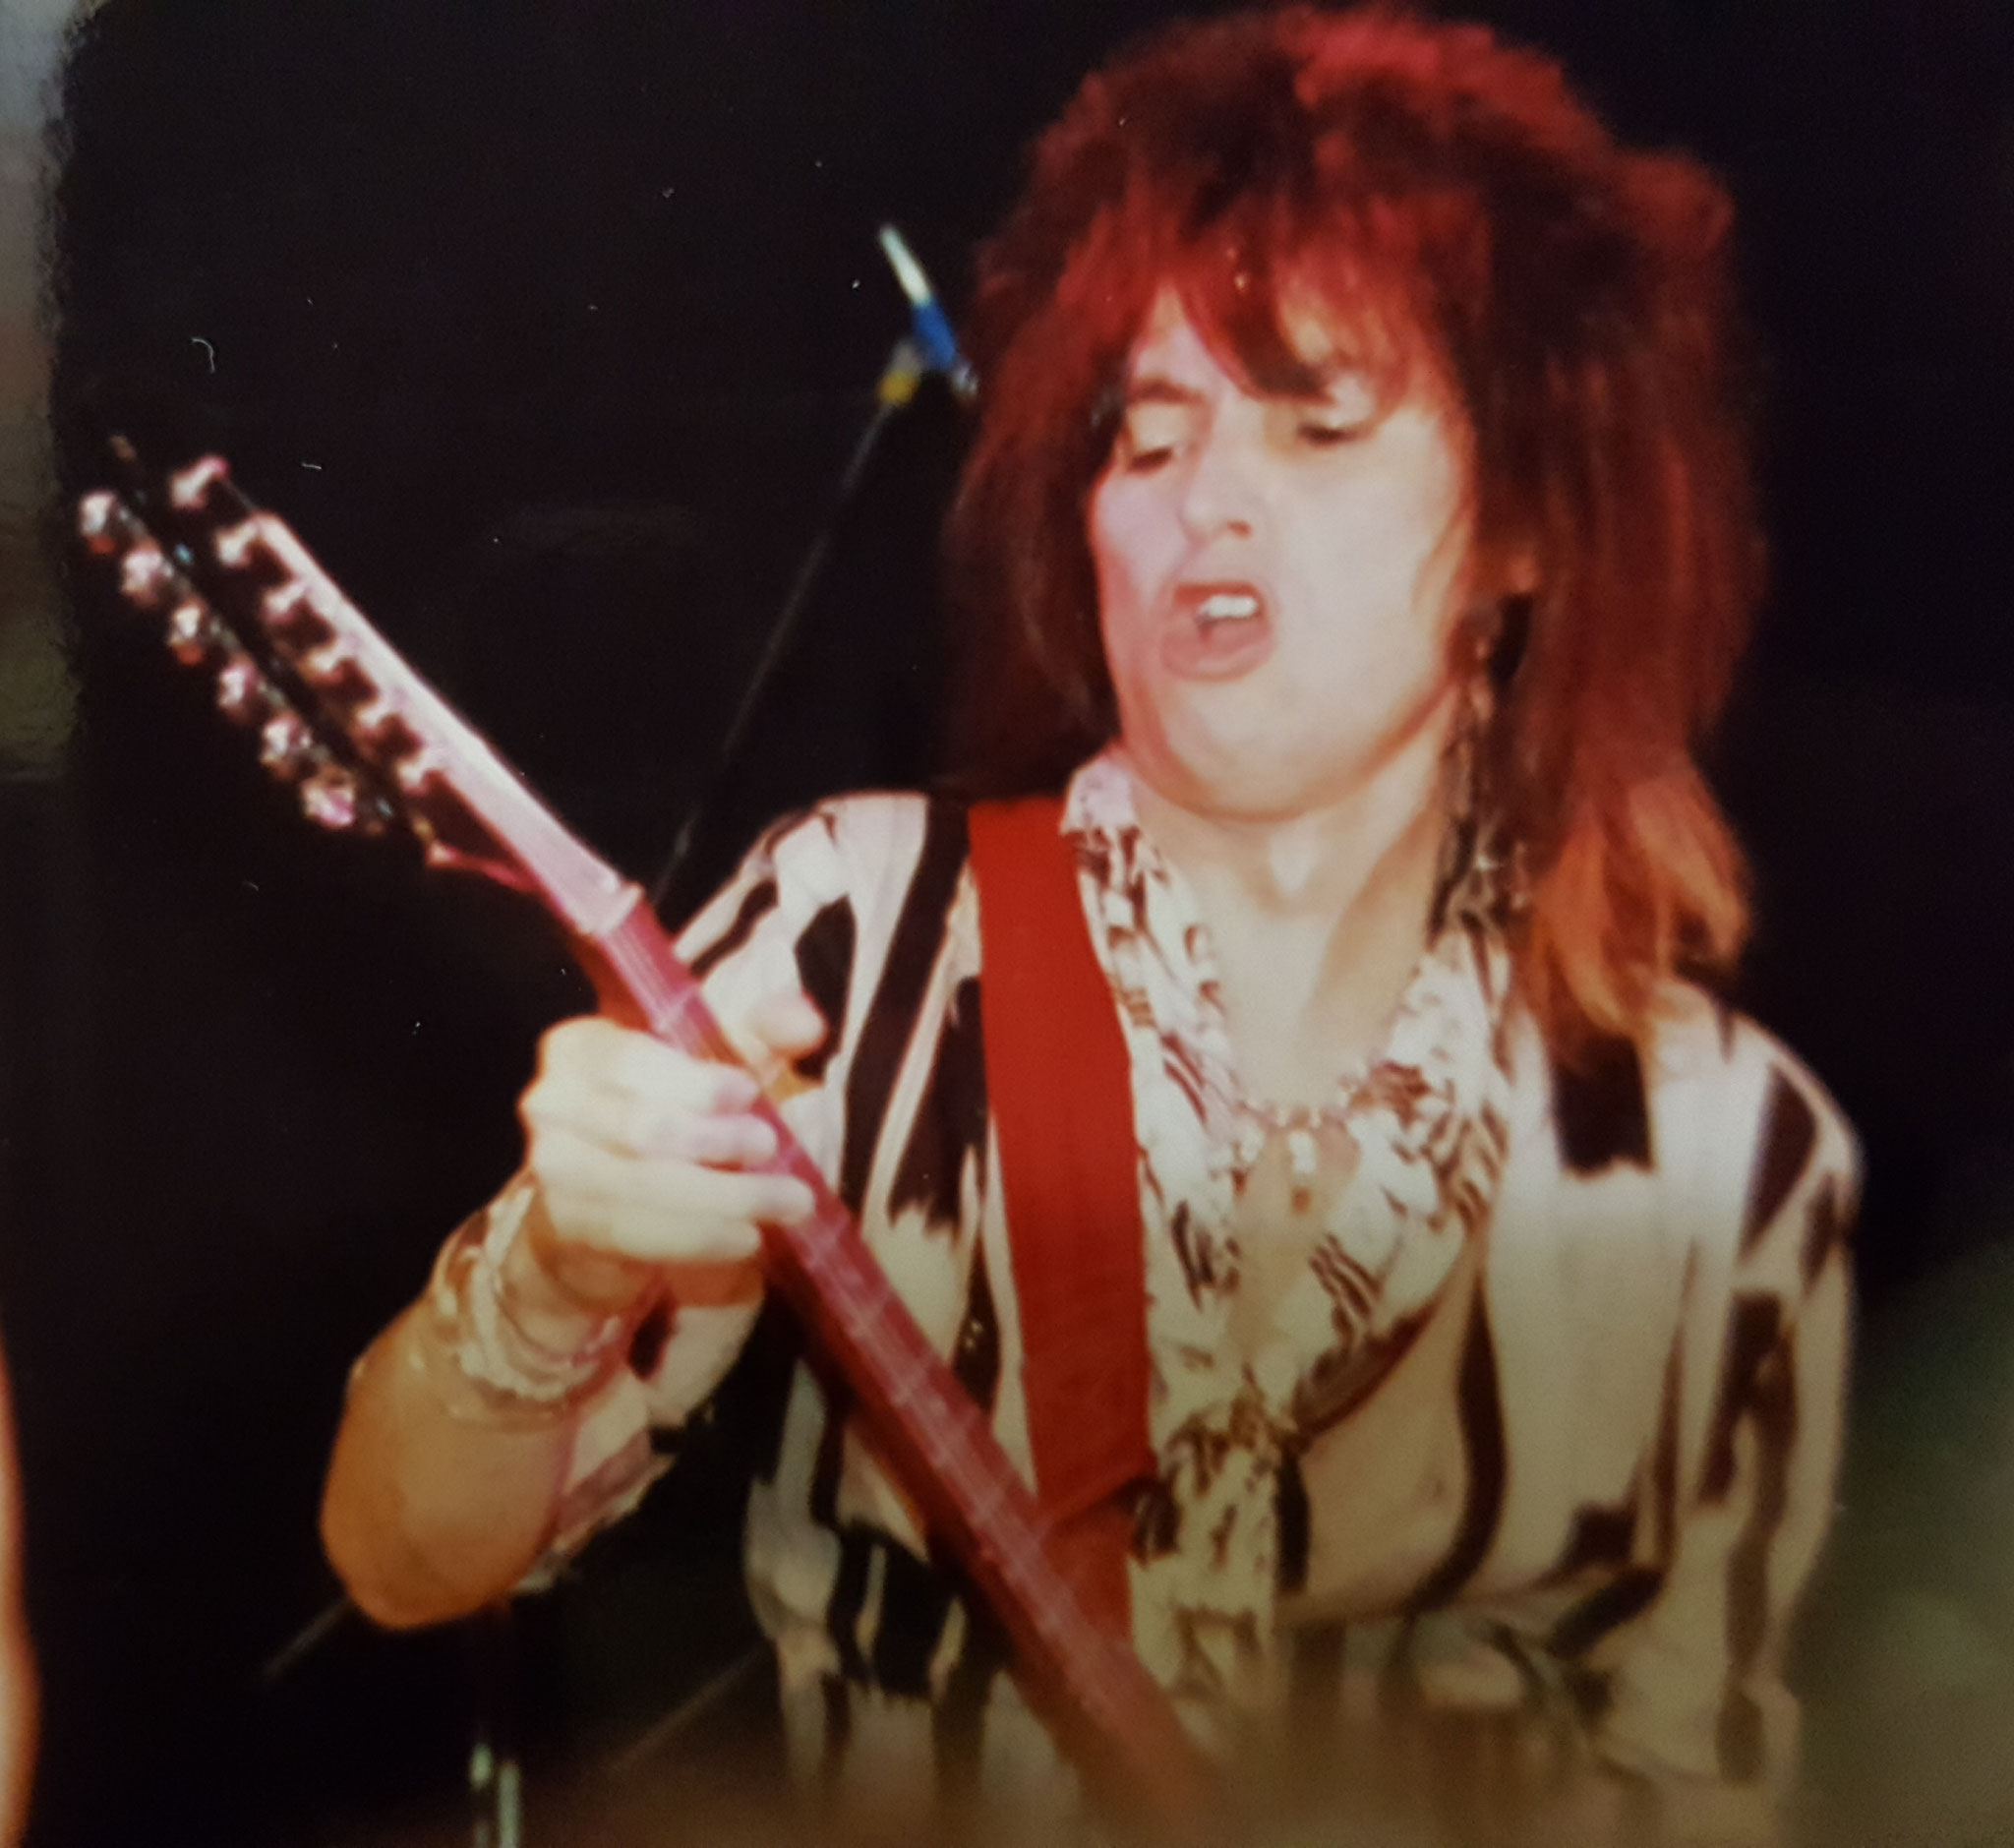 UFO at The Living Room in Providence, Rhode Island - Misdemeanor Tour 1985 - pic by Jack Sullivan